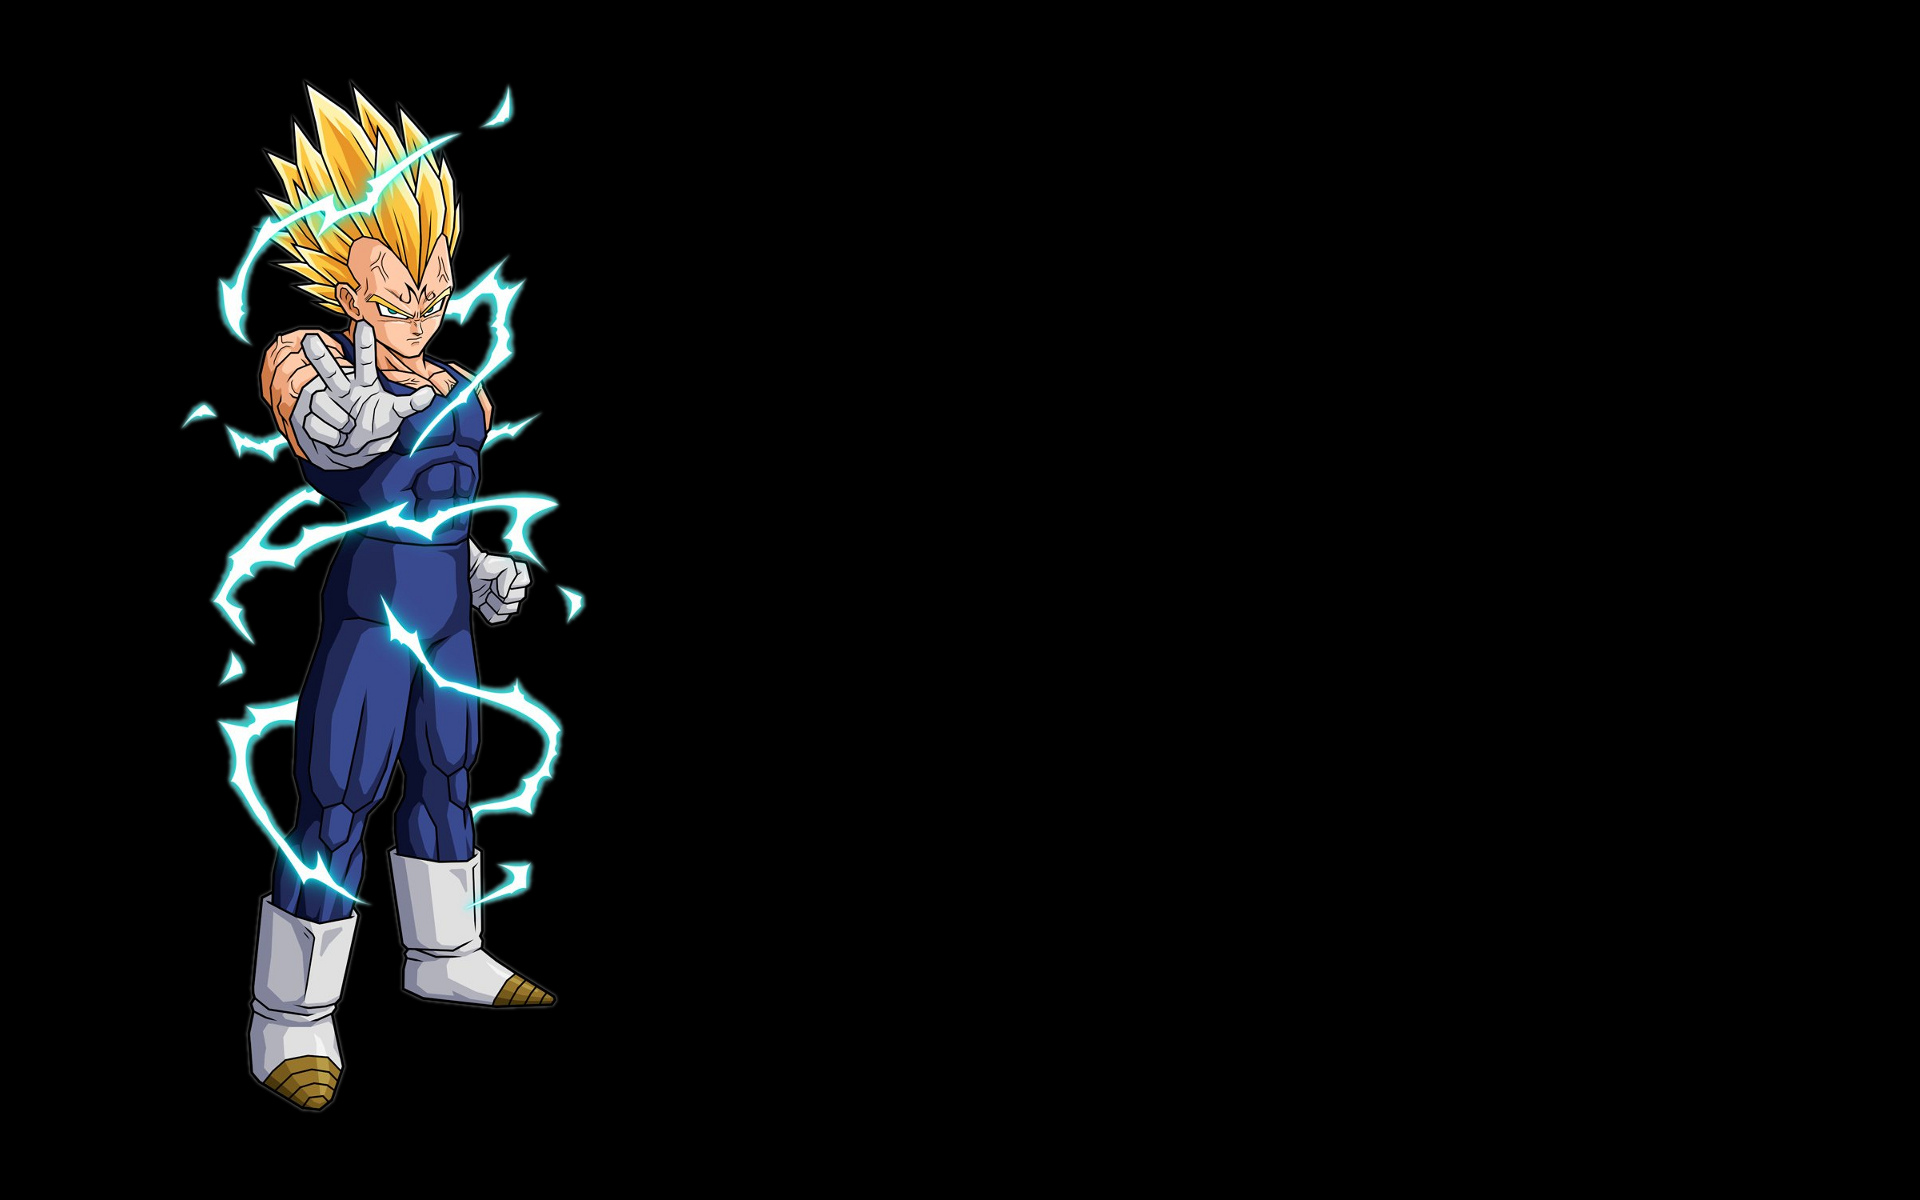 Vegeta wallpapers high quality download free for Wallpaper immagini hd